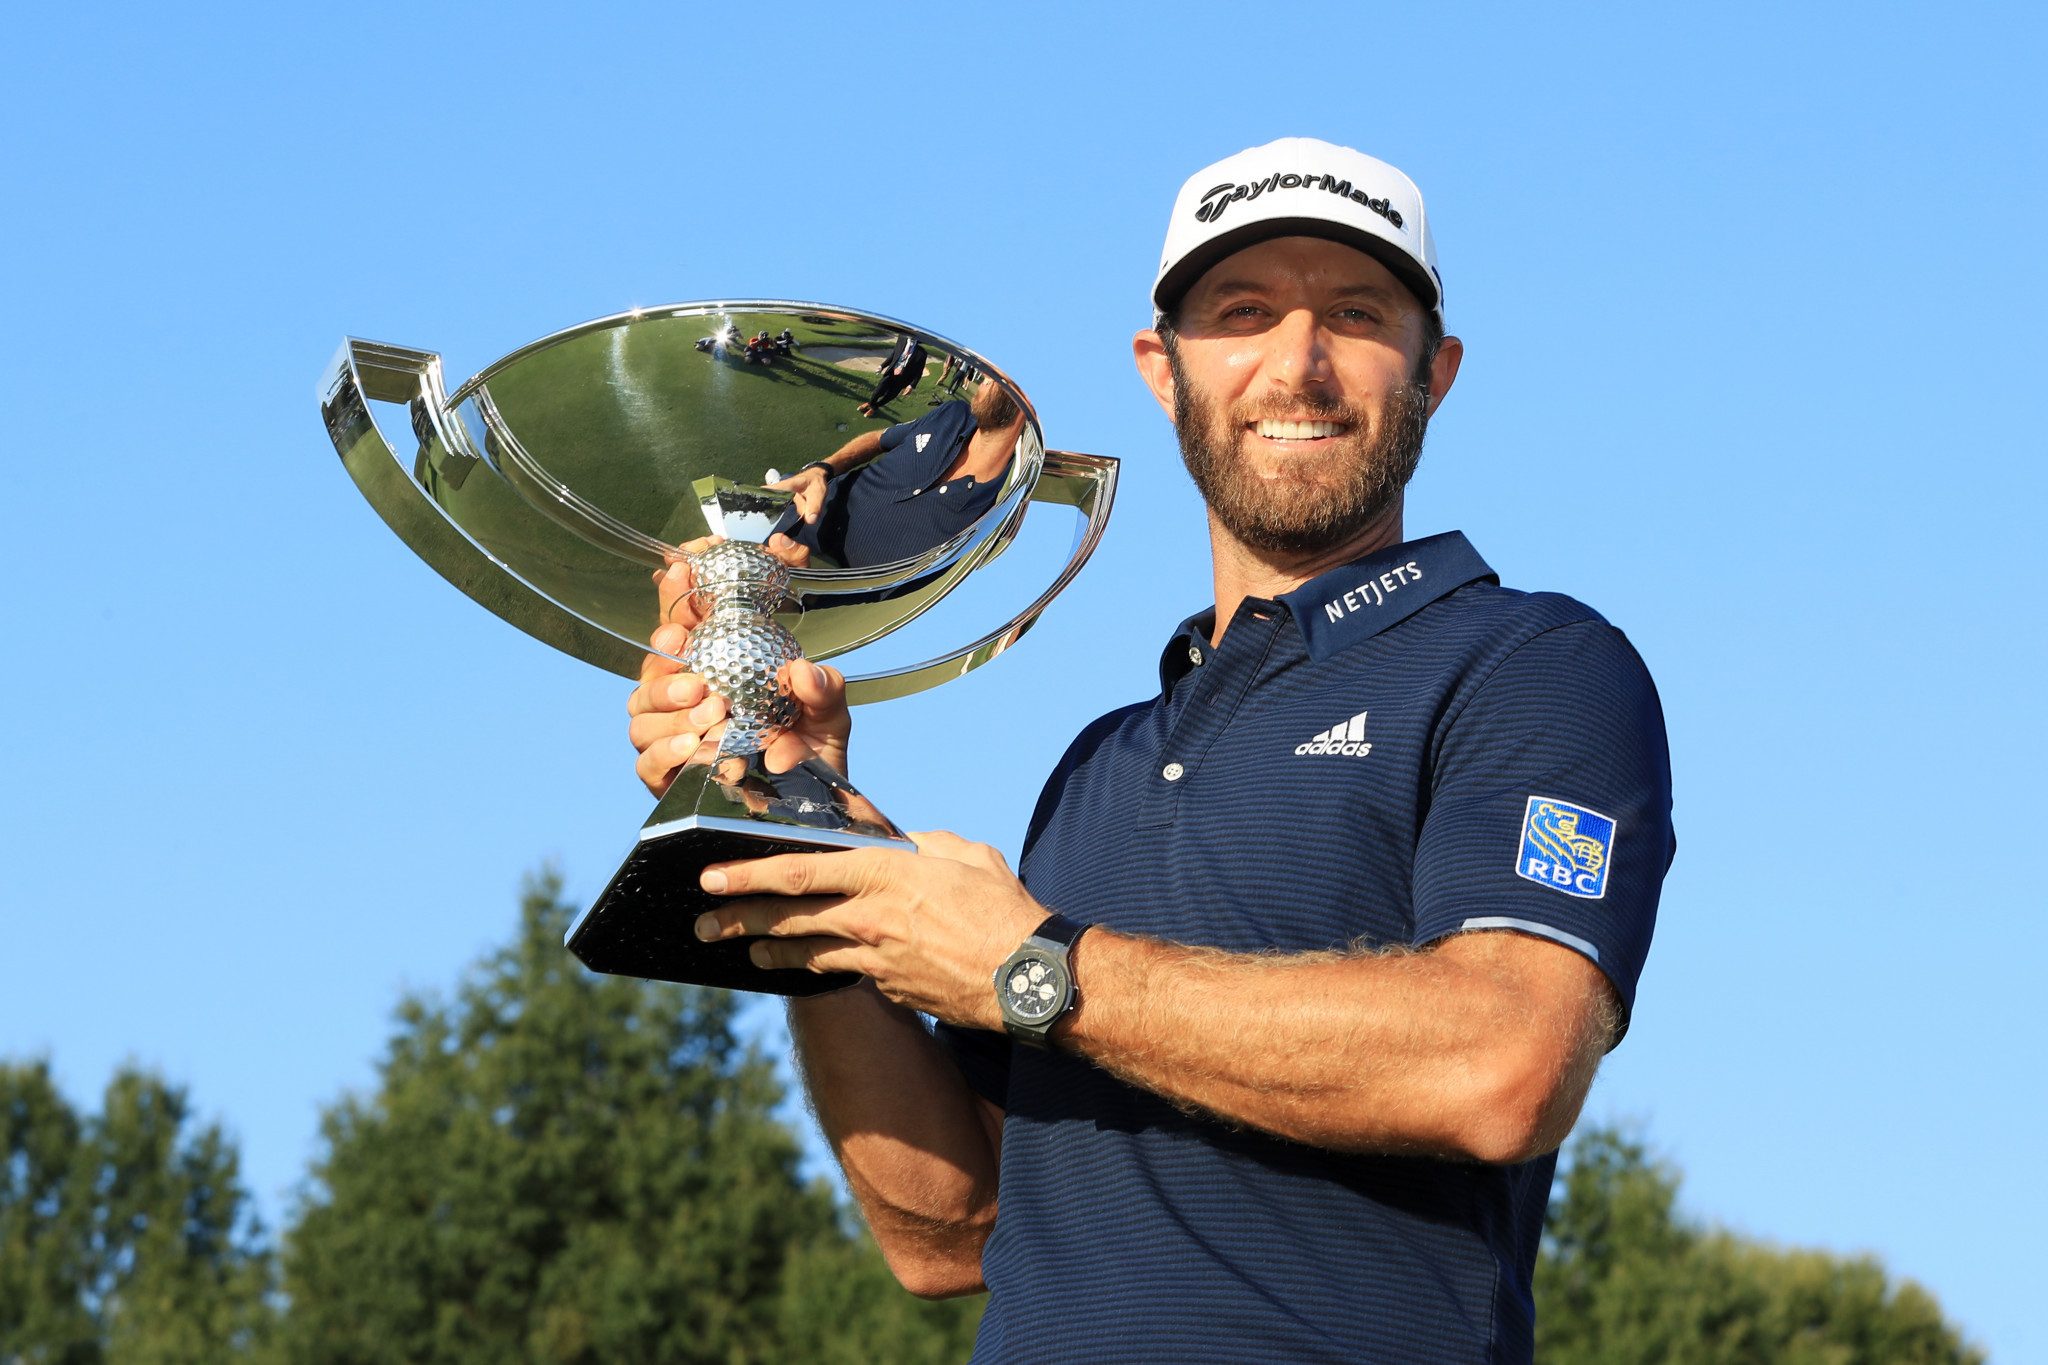 Dustin Johnson enjoyed a successful September after claiming the FedExCup Championship title ©Getty Images